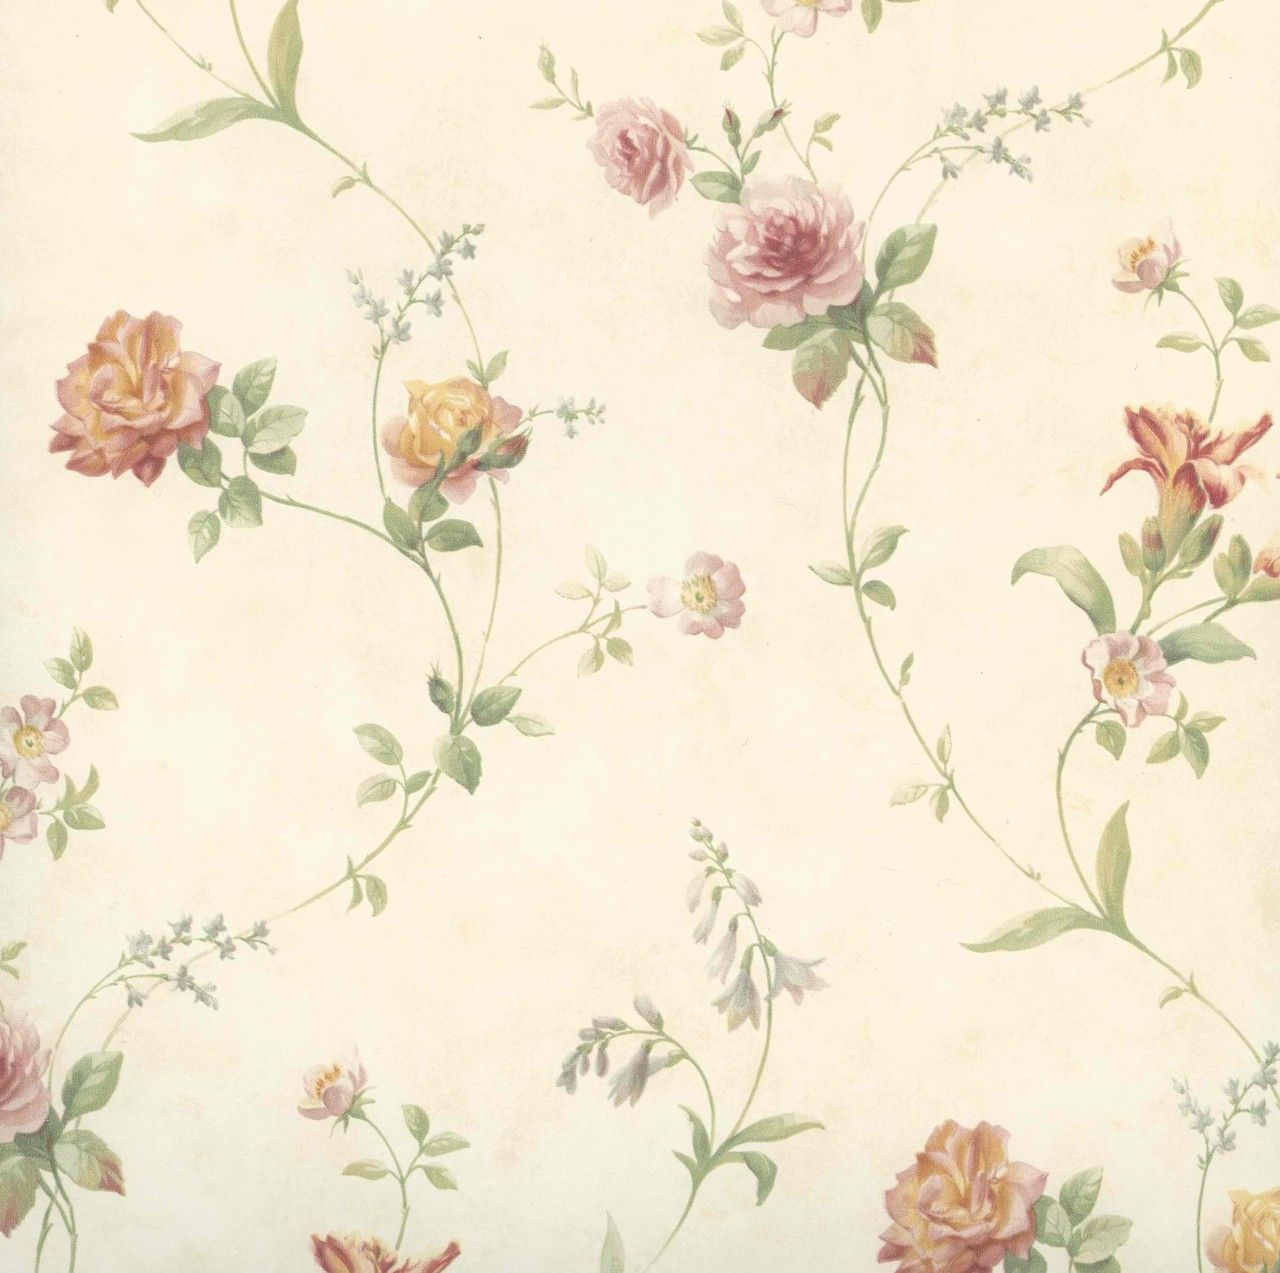 Kitchen Wallpaper Texture wallpaper for kitchen texture - google search | projects